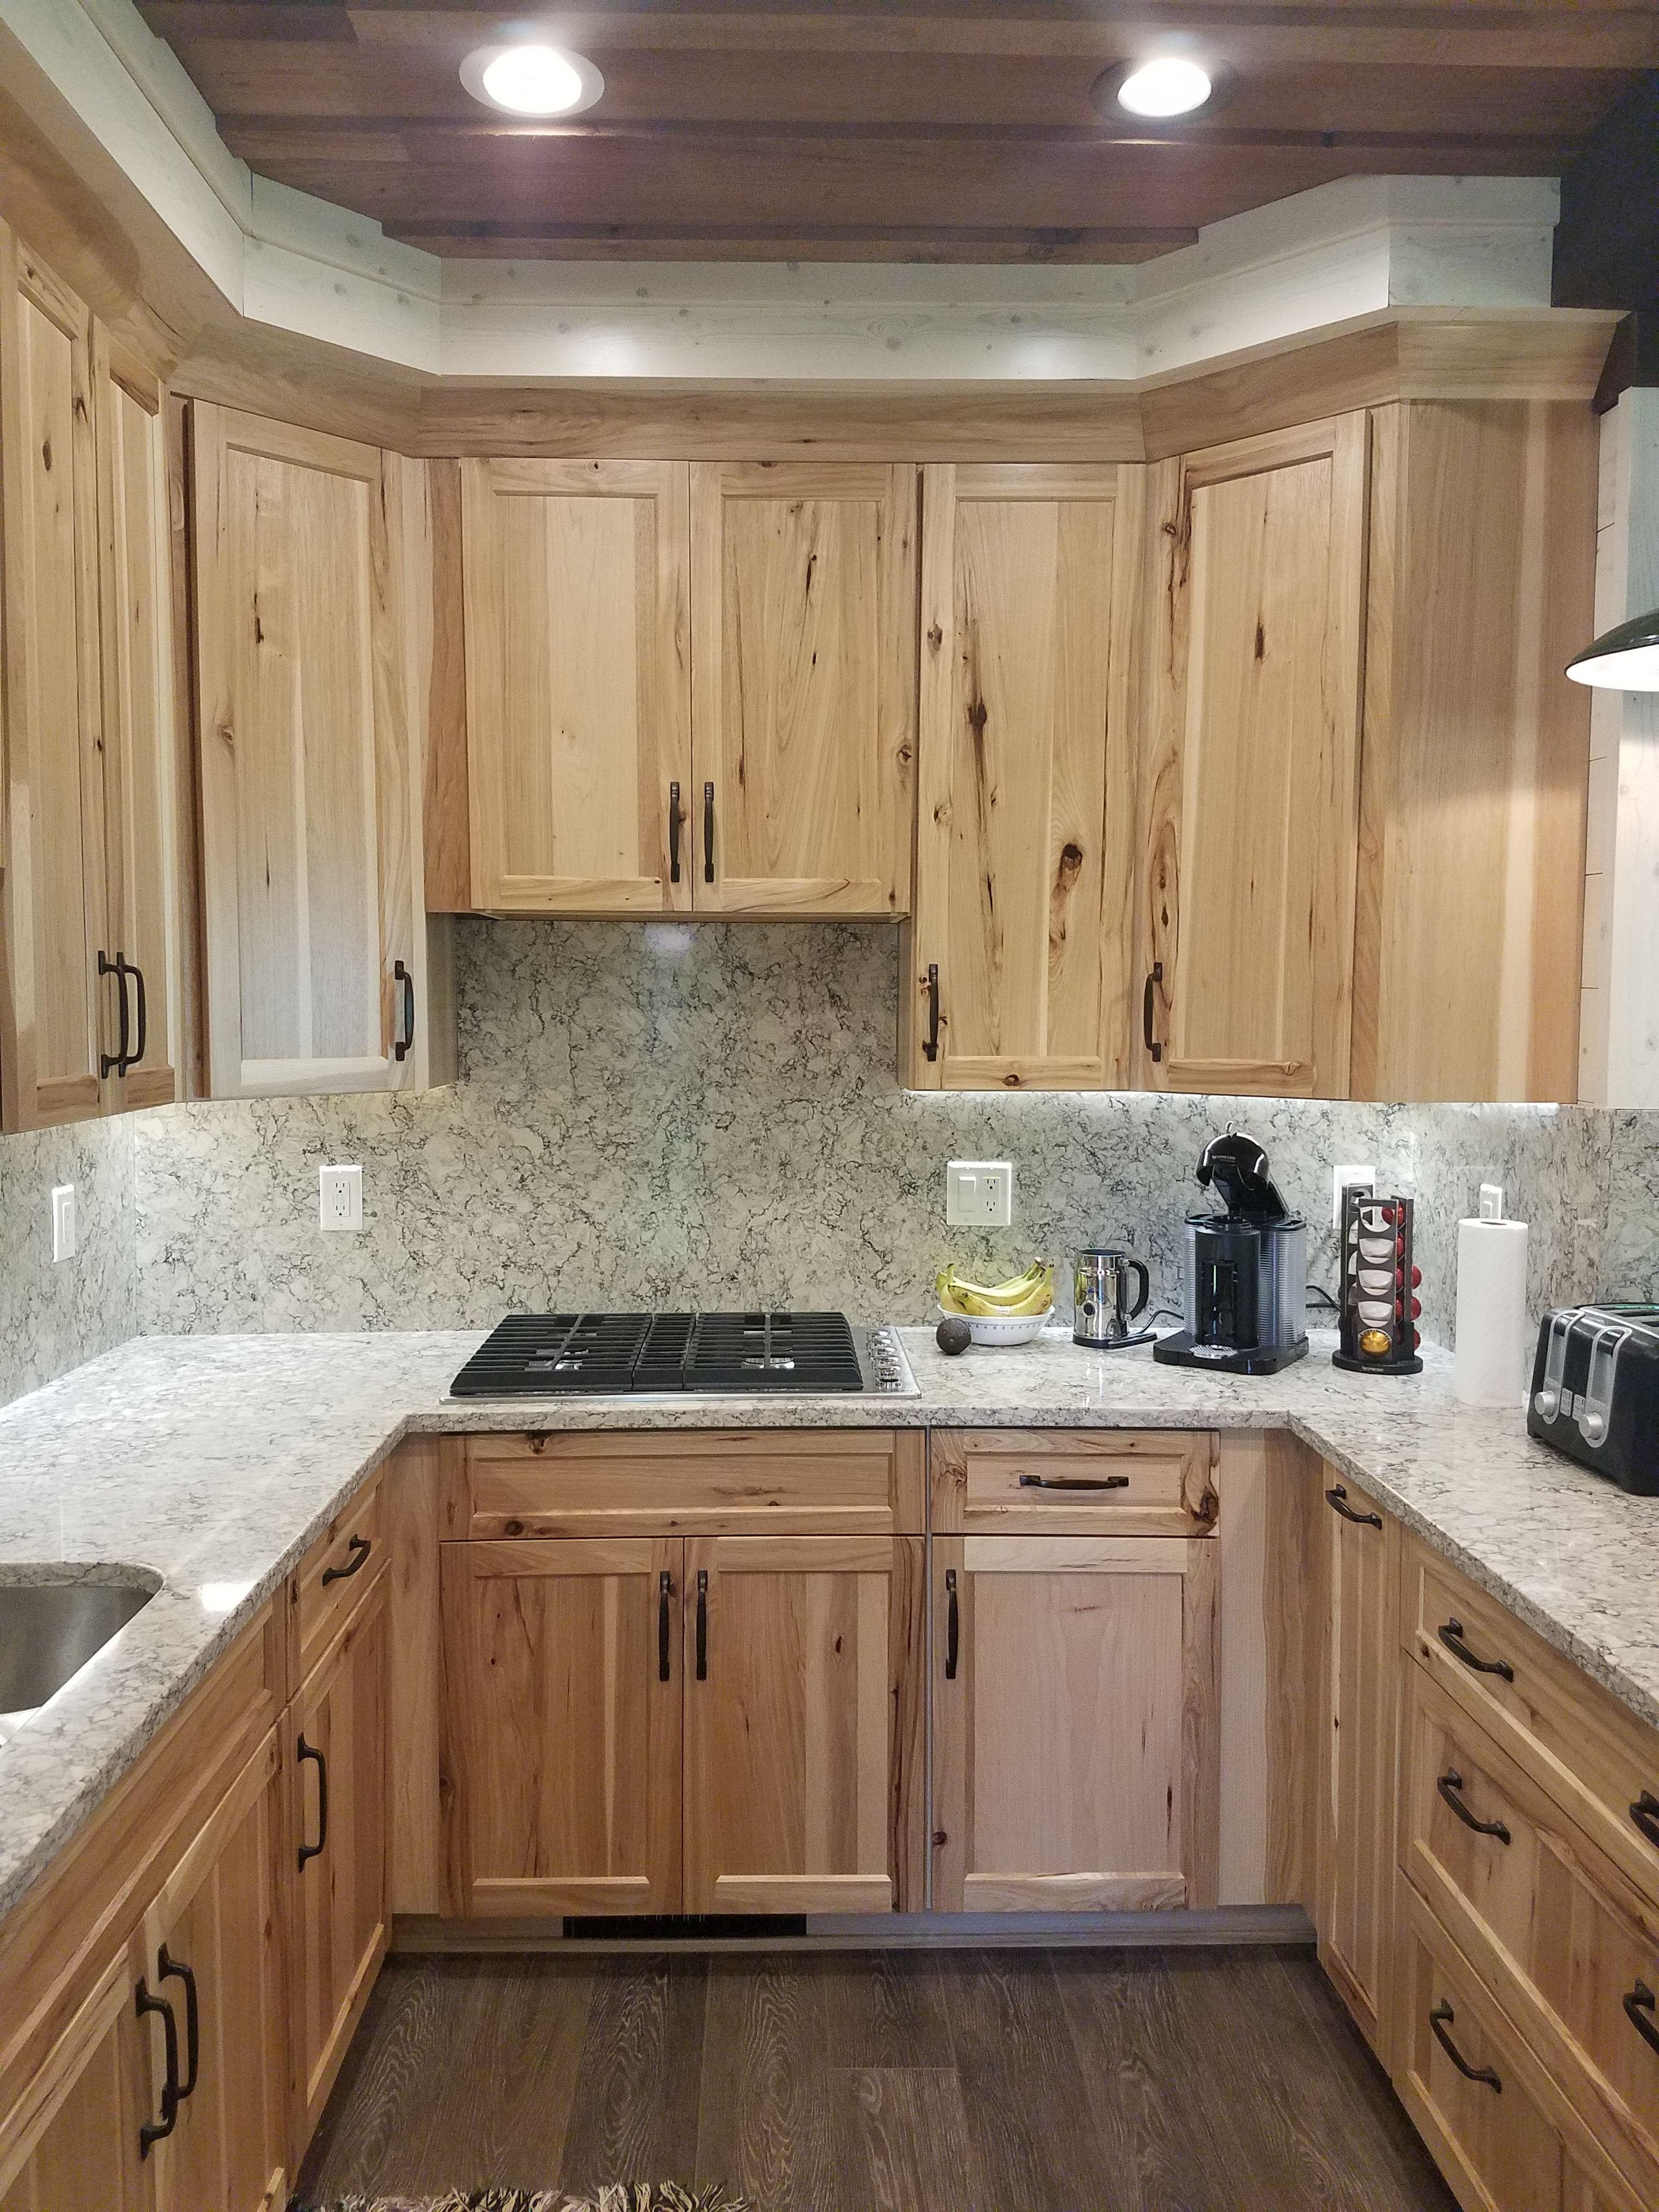 Hickory Shaker Style Kitchen Cabinets Bright Light Fixtures Fresh Pictures Of With Quartz Countertops